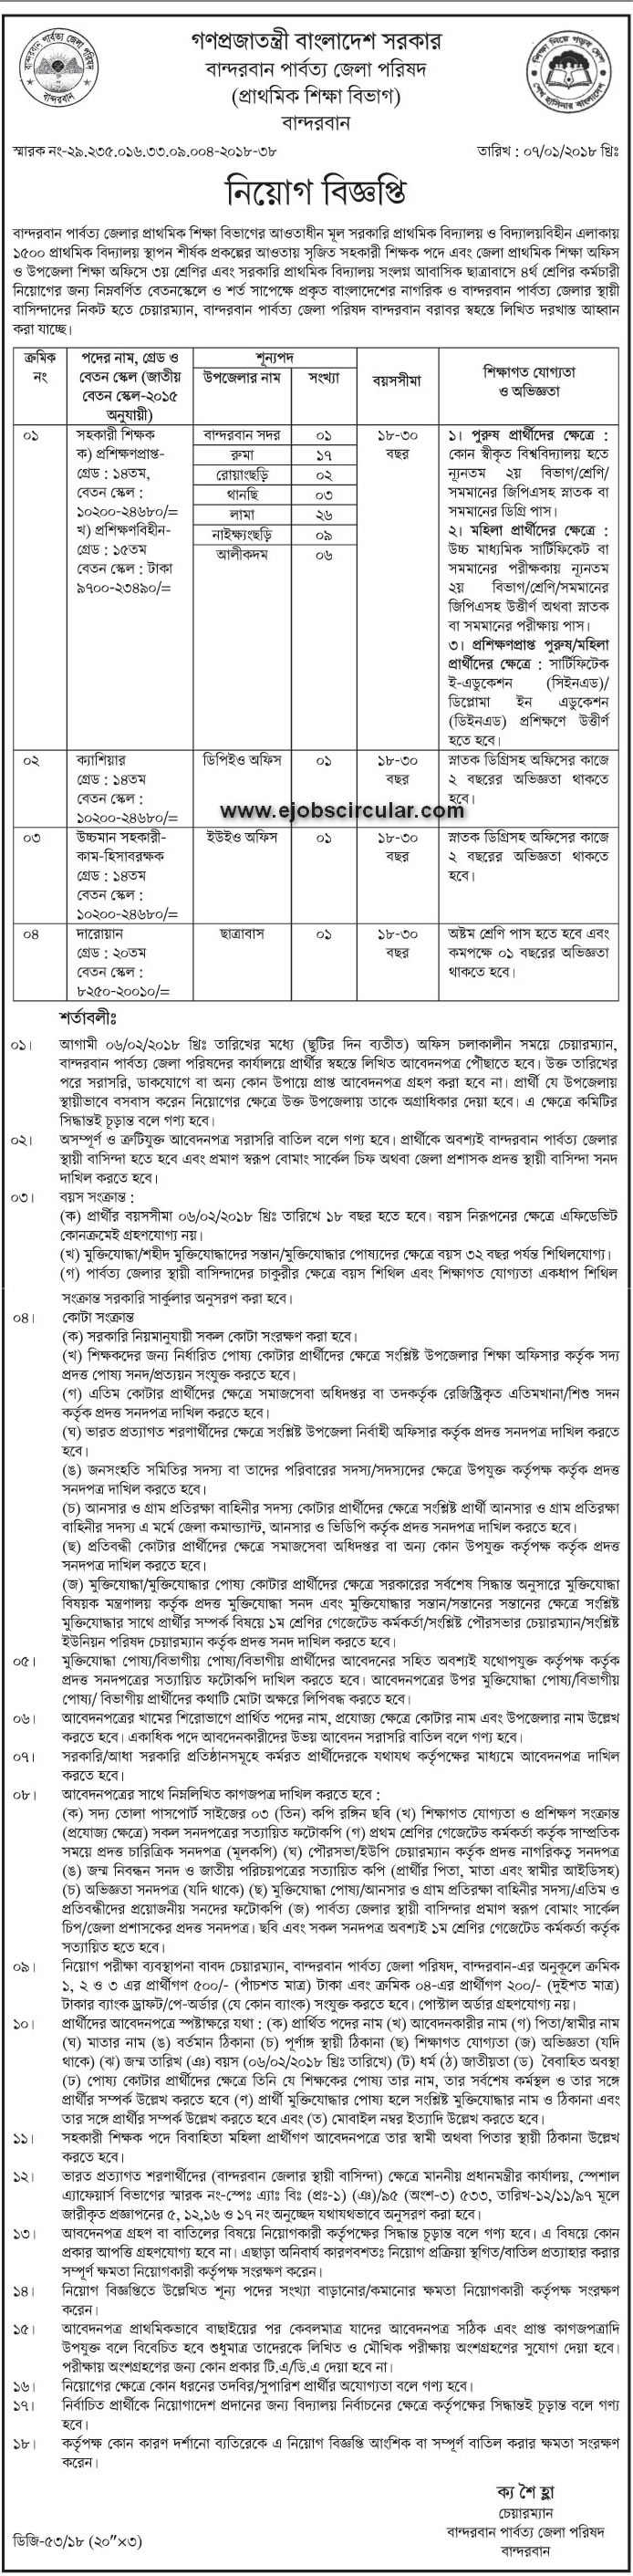 Primary School Teacher Jobs Circular